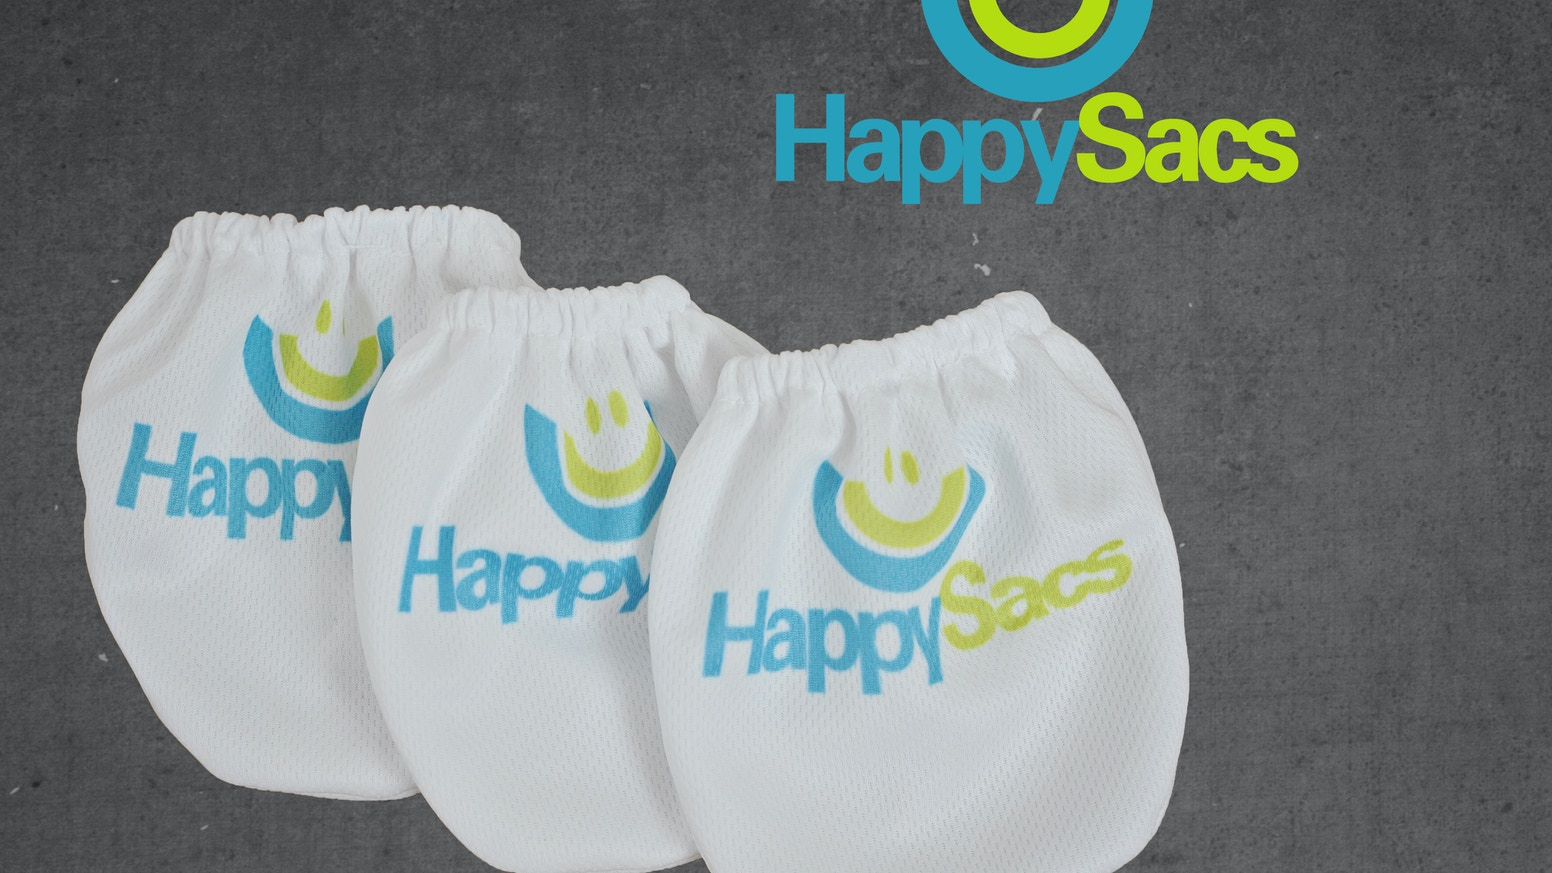 b662da0e90b649 HappySacs - The Ultimate Solution for Men's Comfort by Christian ...